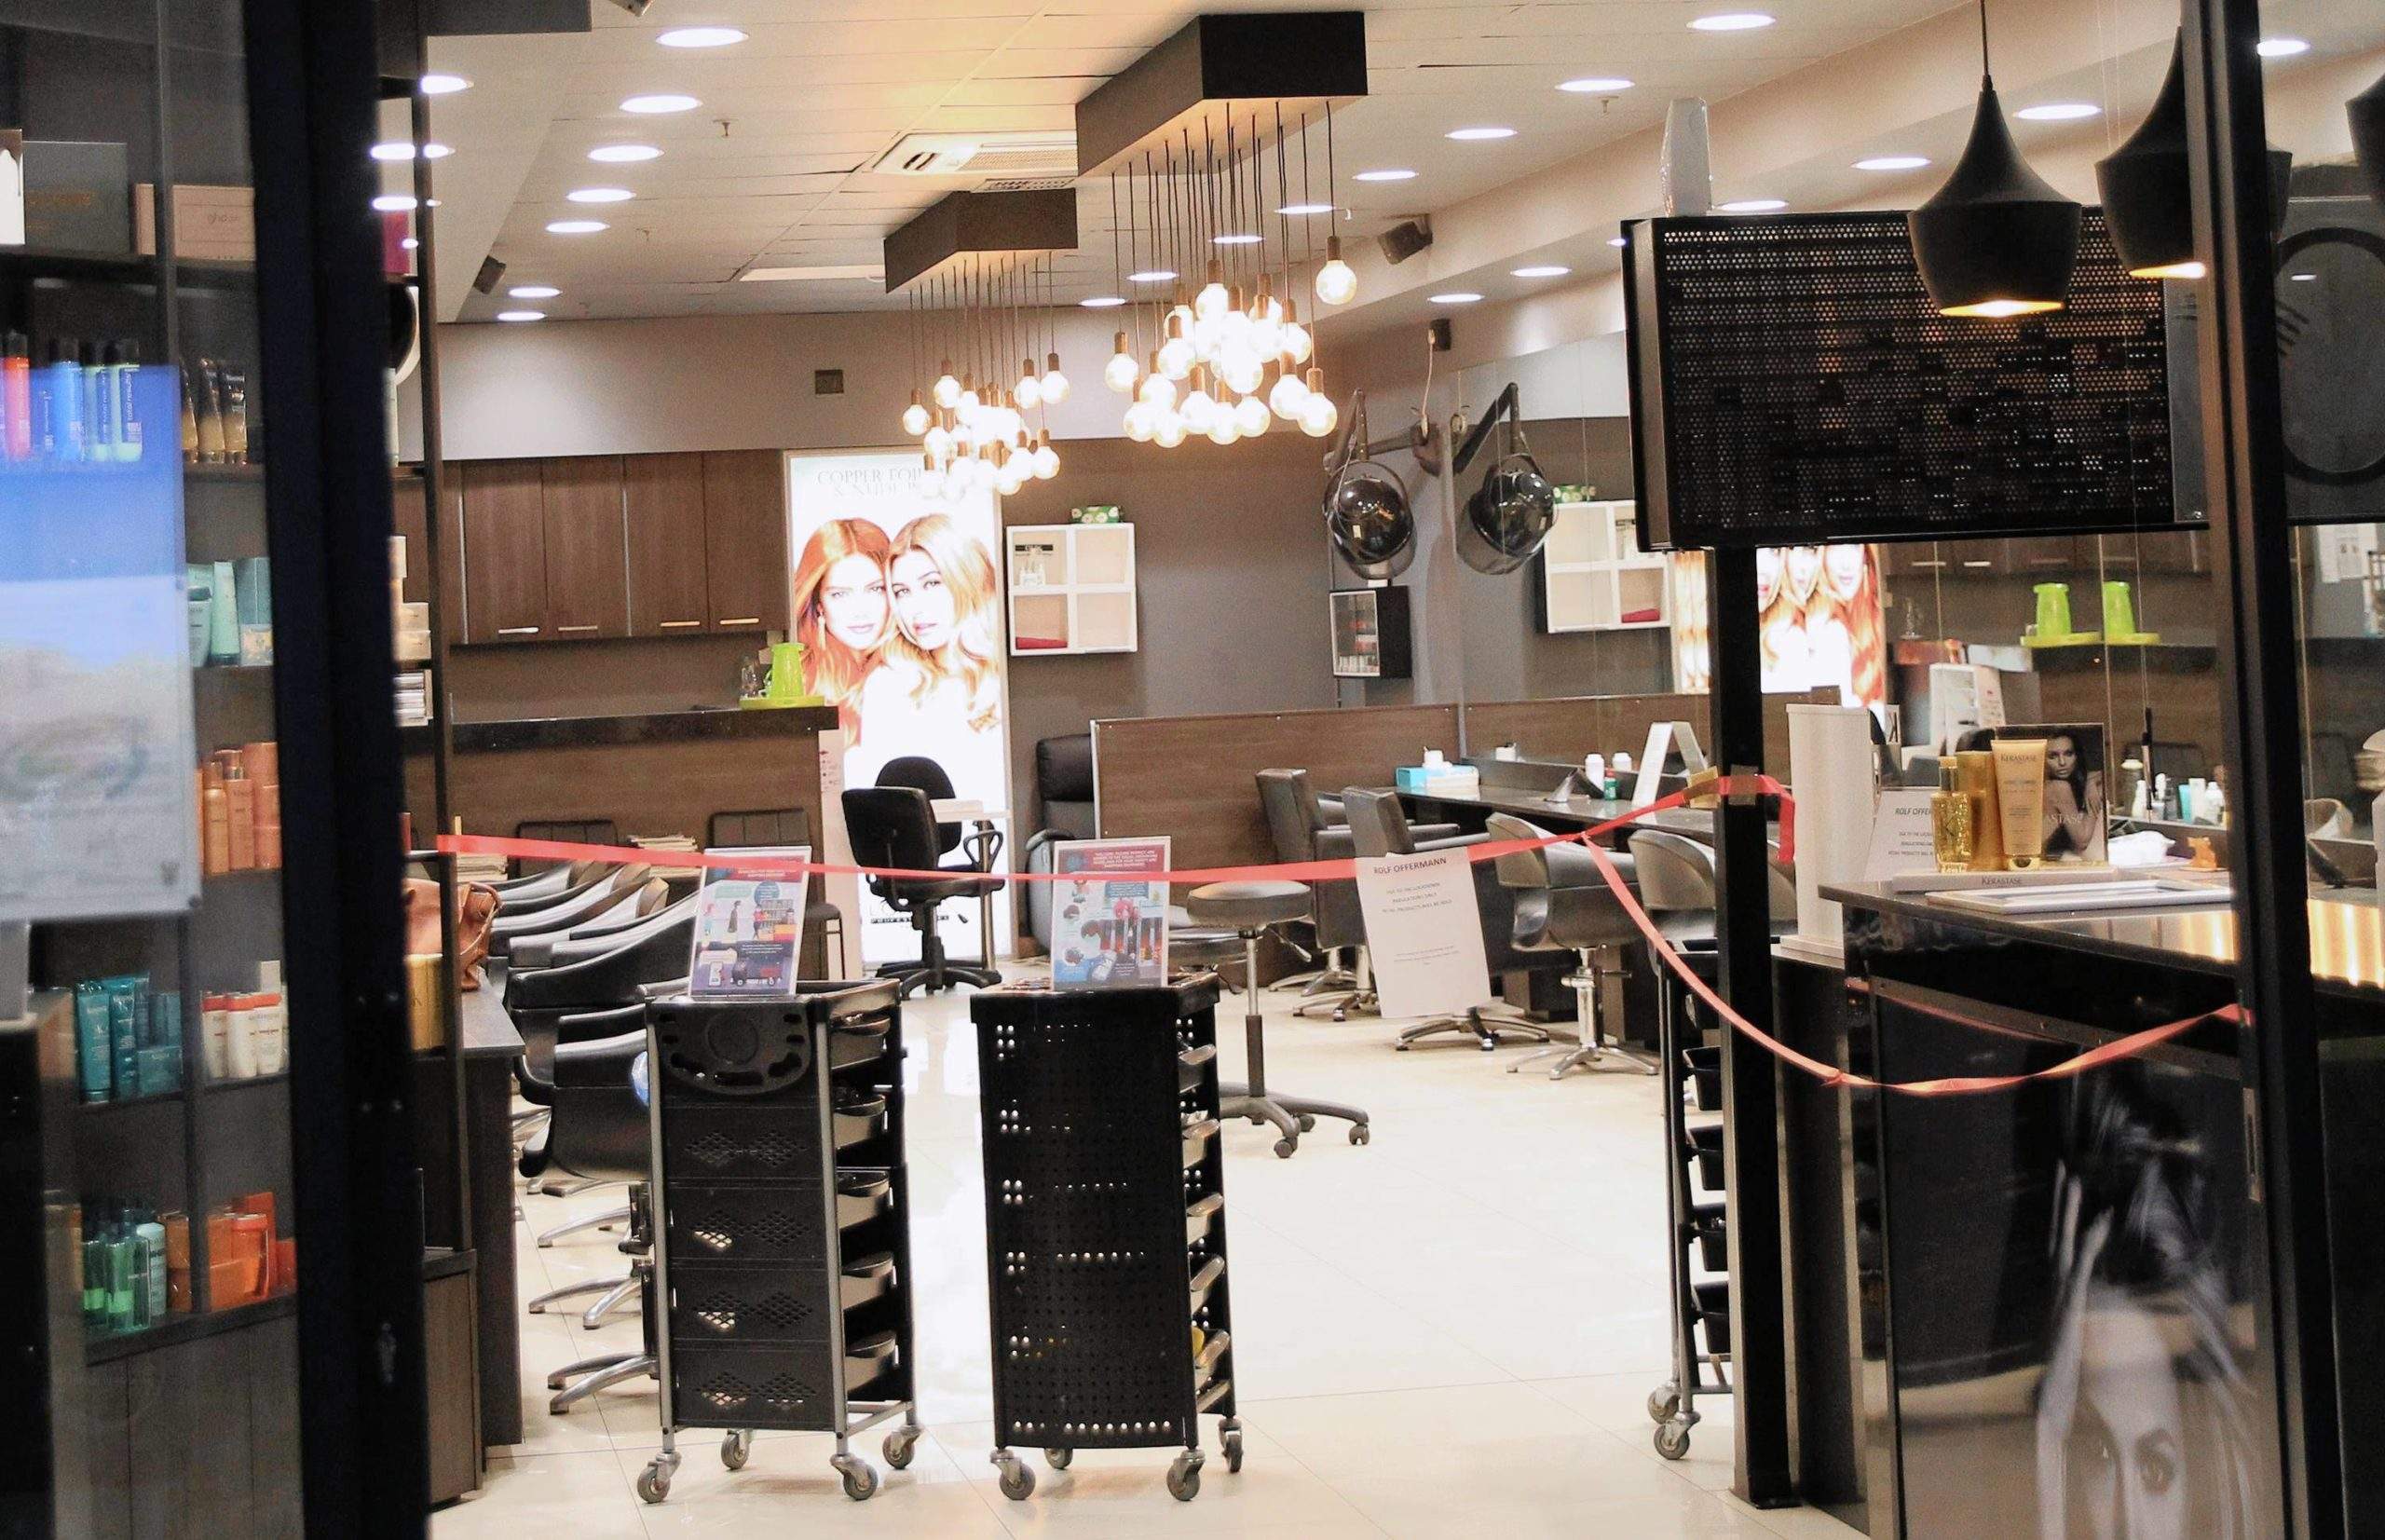 Ban on hairdressers irrational: DA will go to court